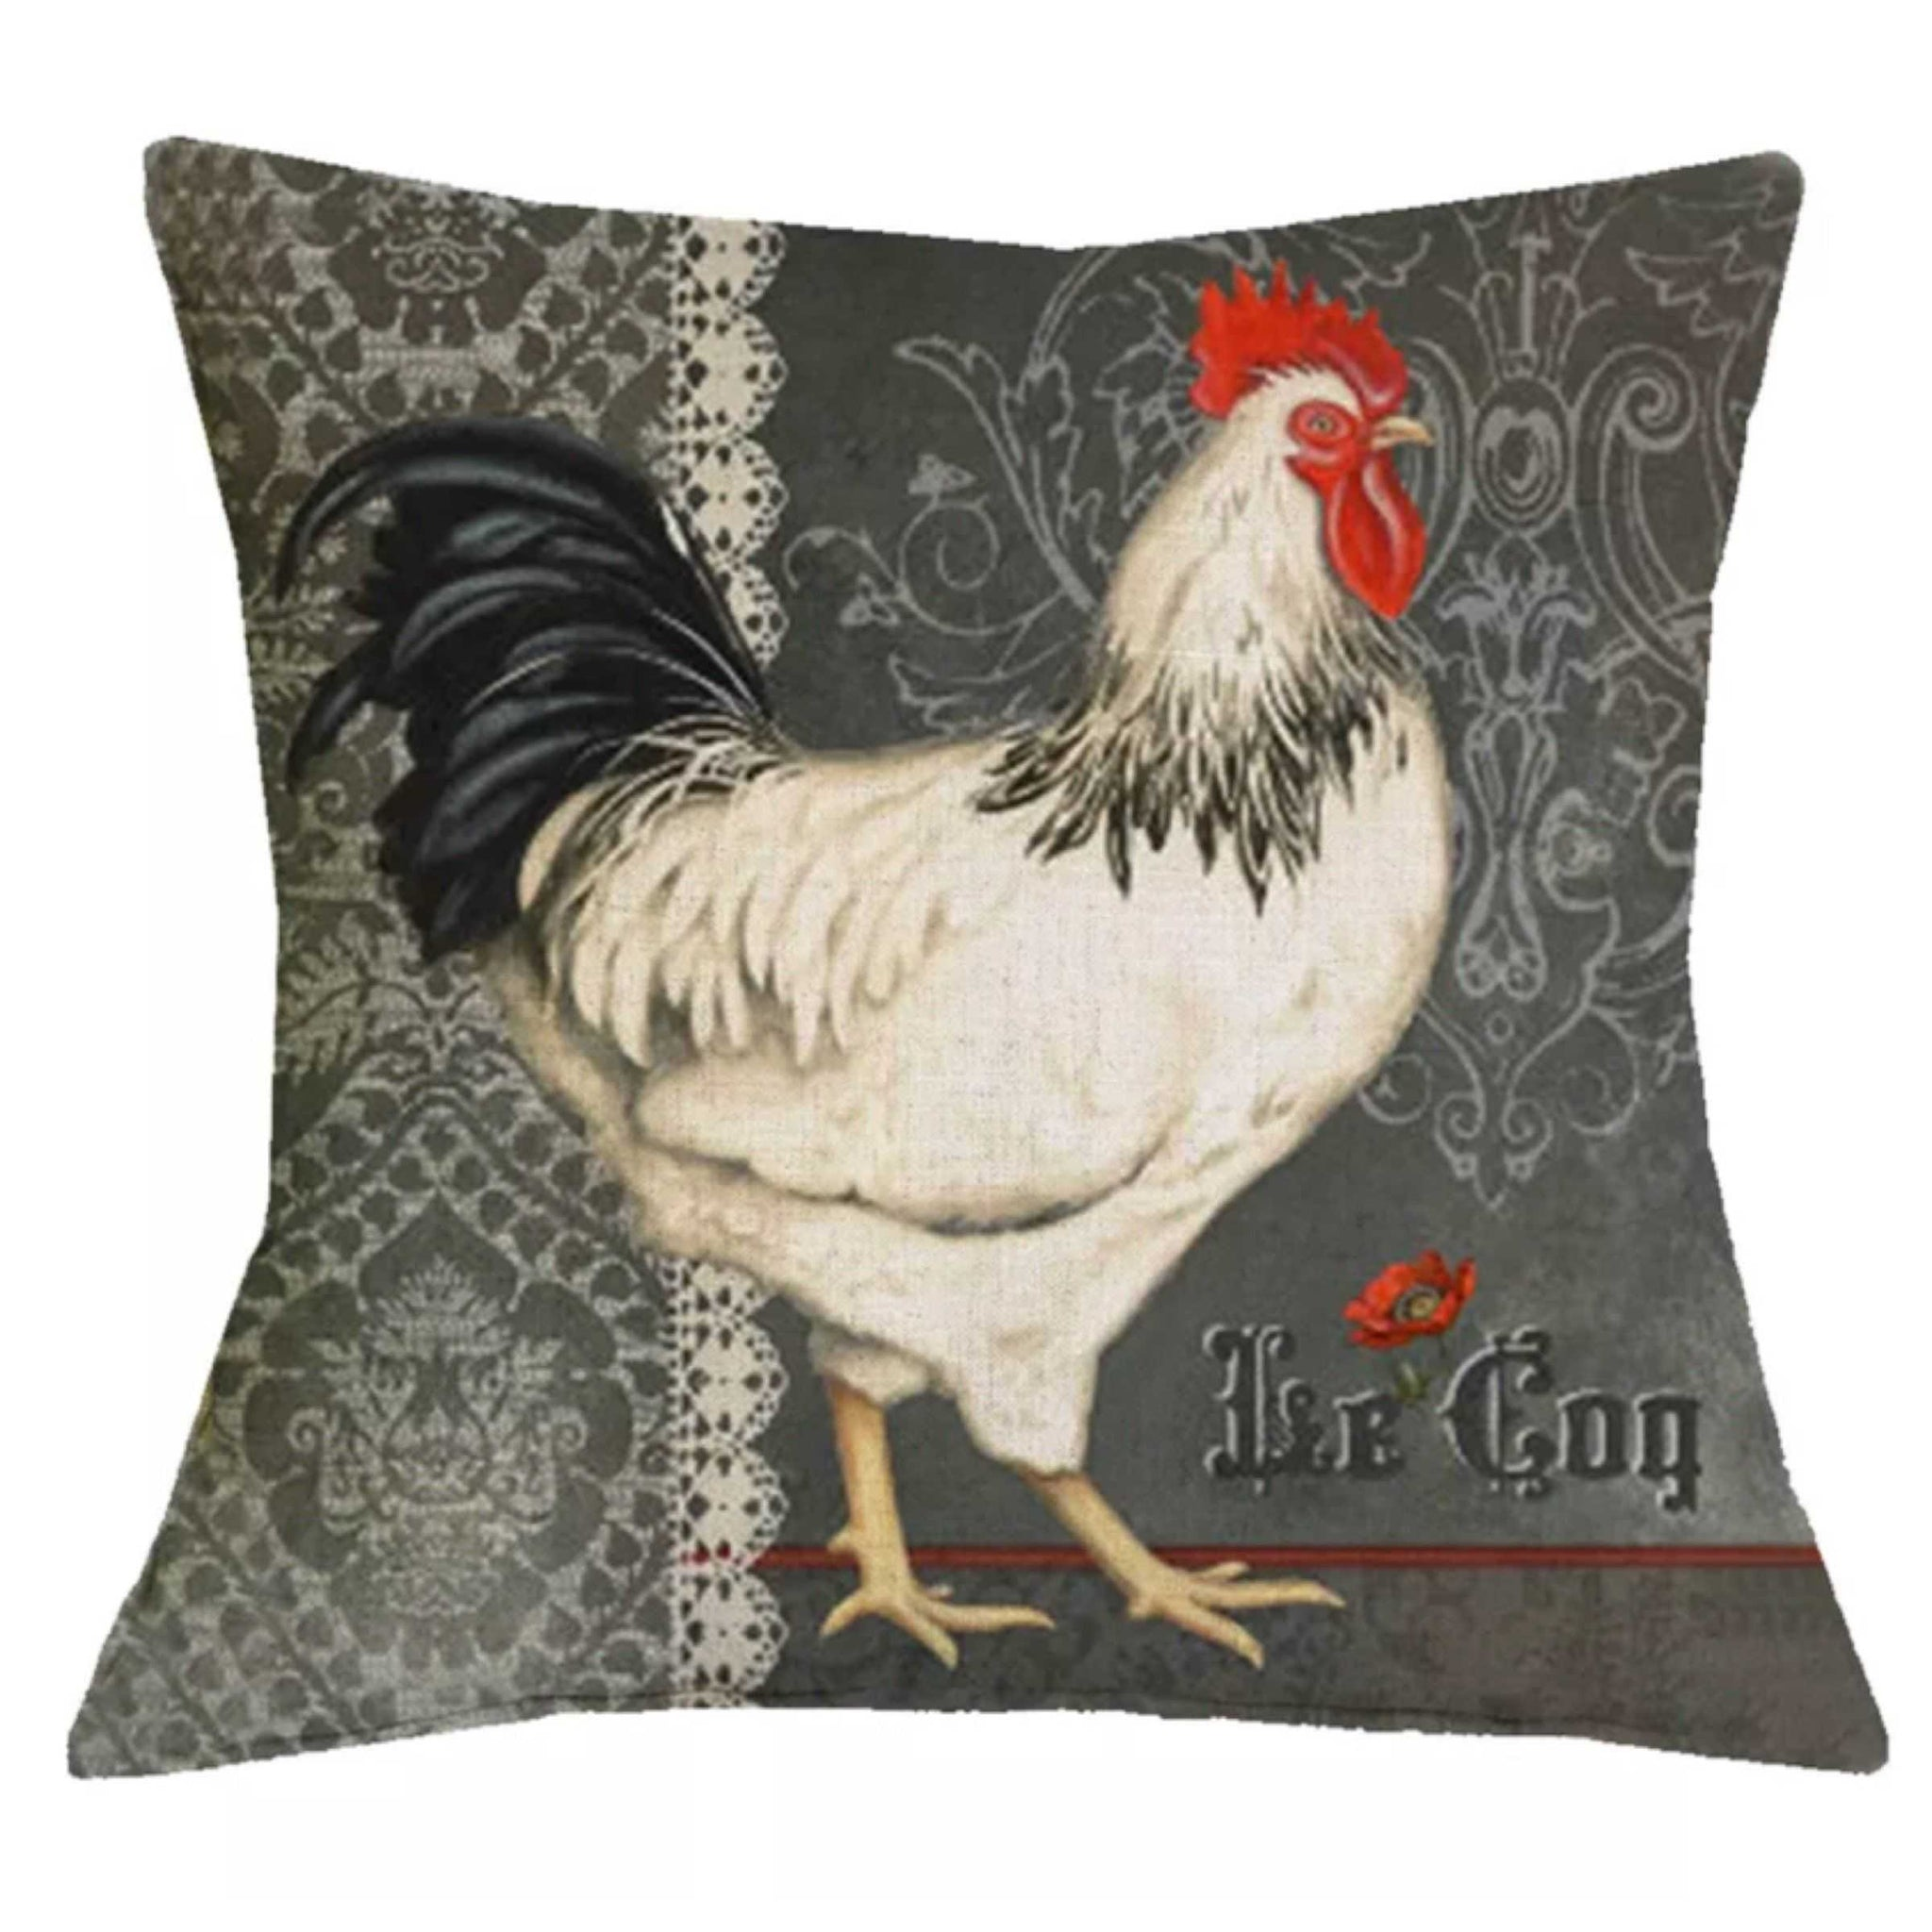 Cushion Pillow White French Le Cog Rooster Cushions, Decorative Pillows The Renmy Store